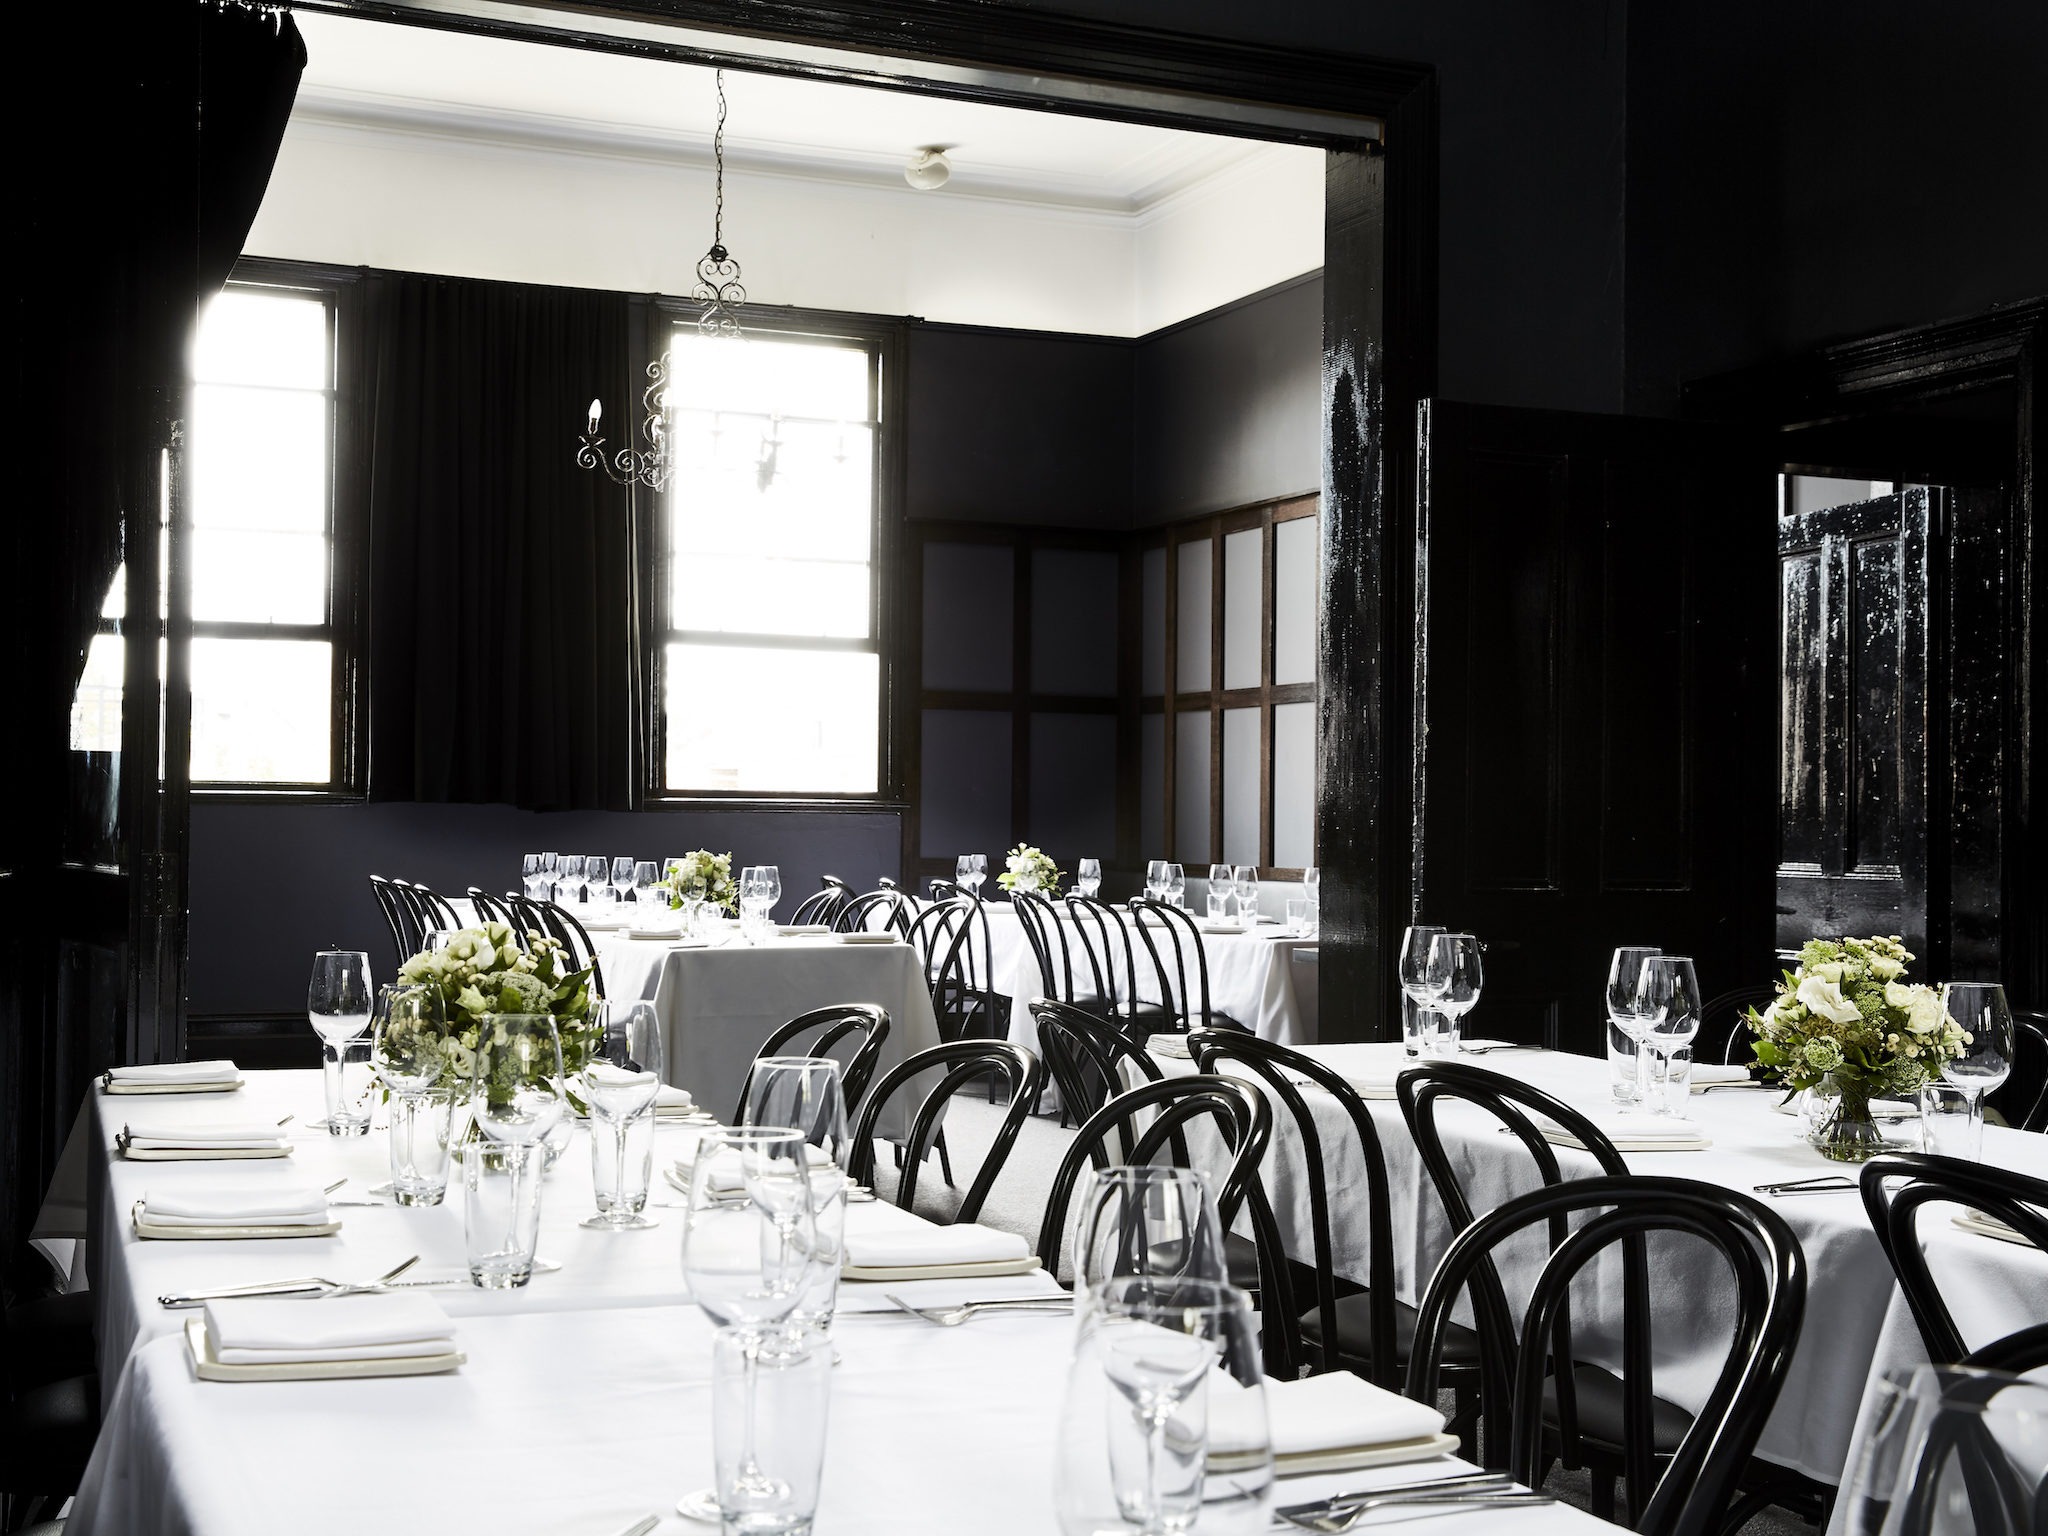 melbourne private dining rooms | The best private dining rooms in Melbourne